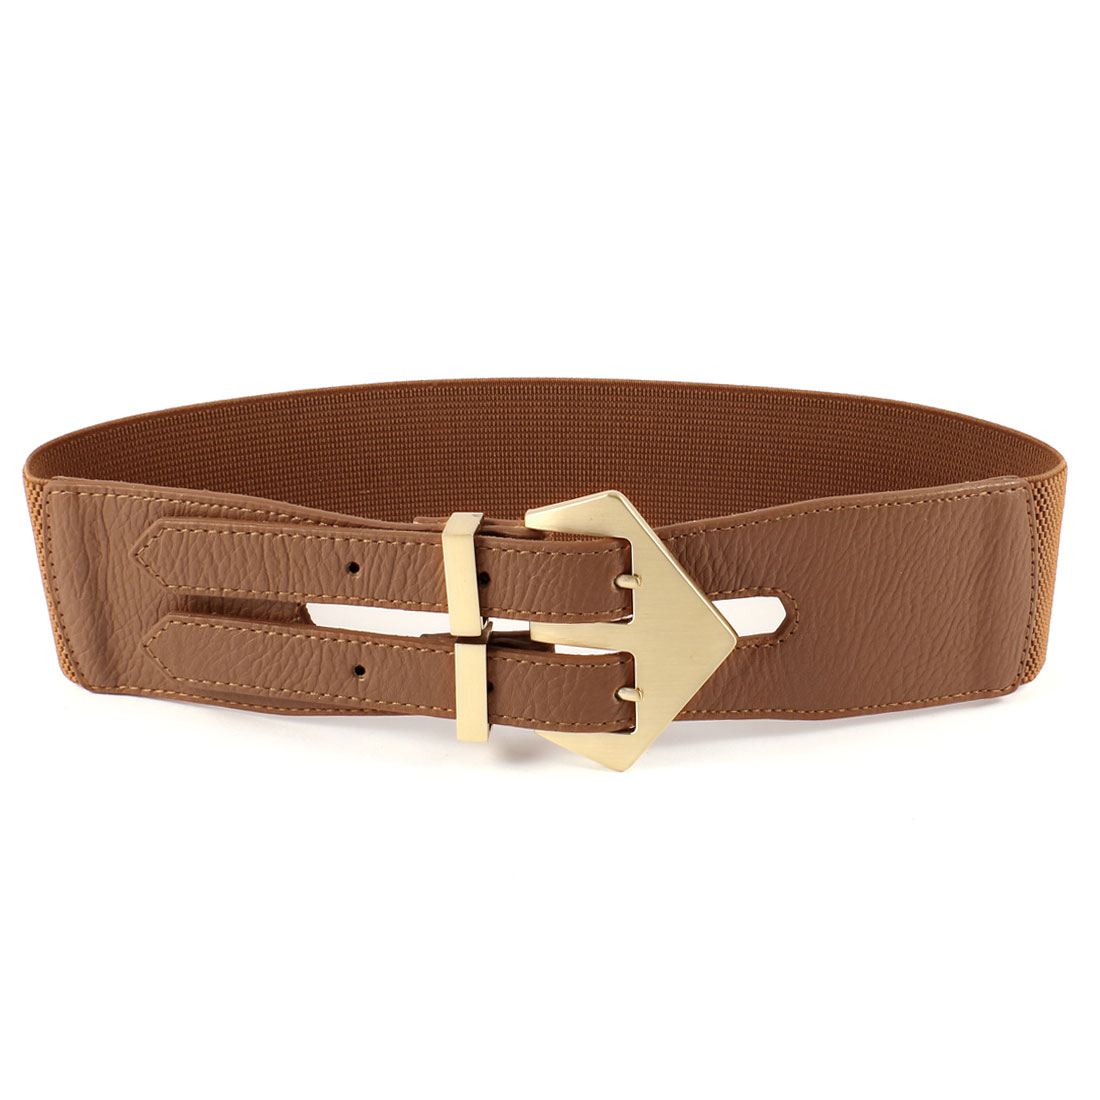 Double Pin Buckle 6cm Wide Adjustable Elastic Belt Brown for Ladies